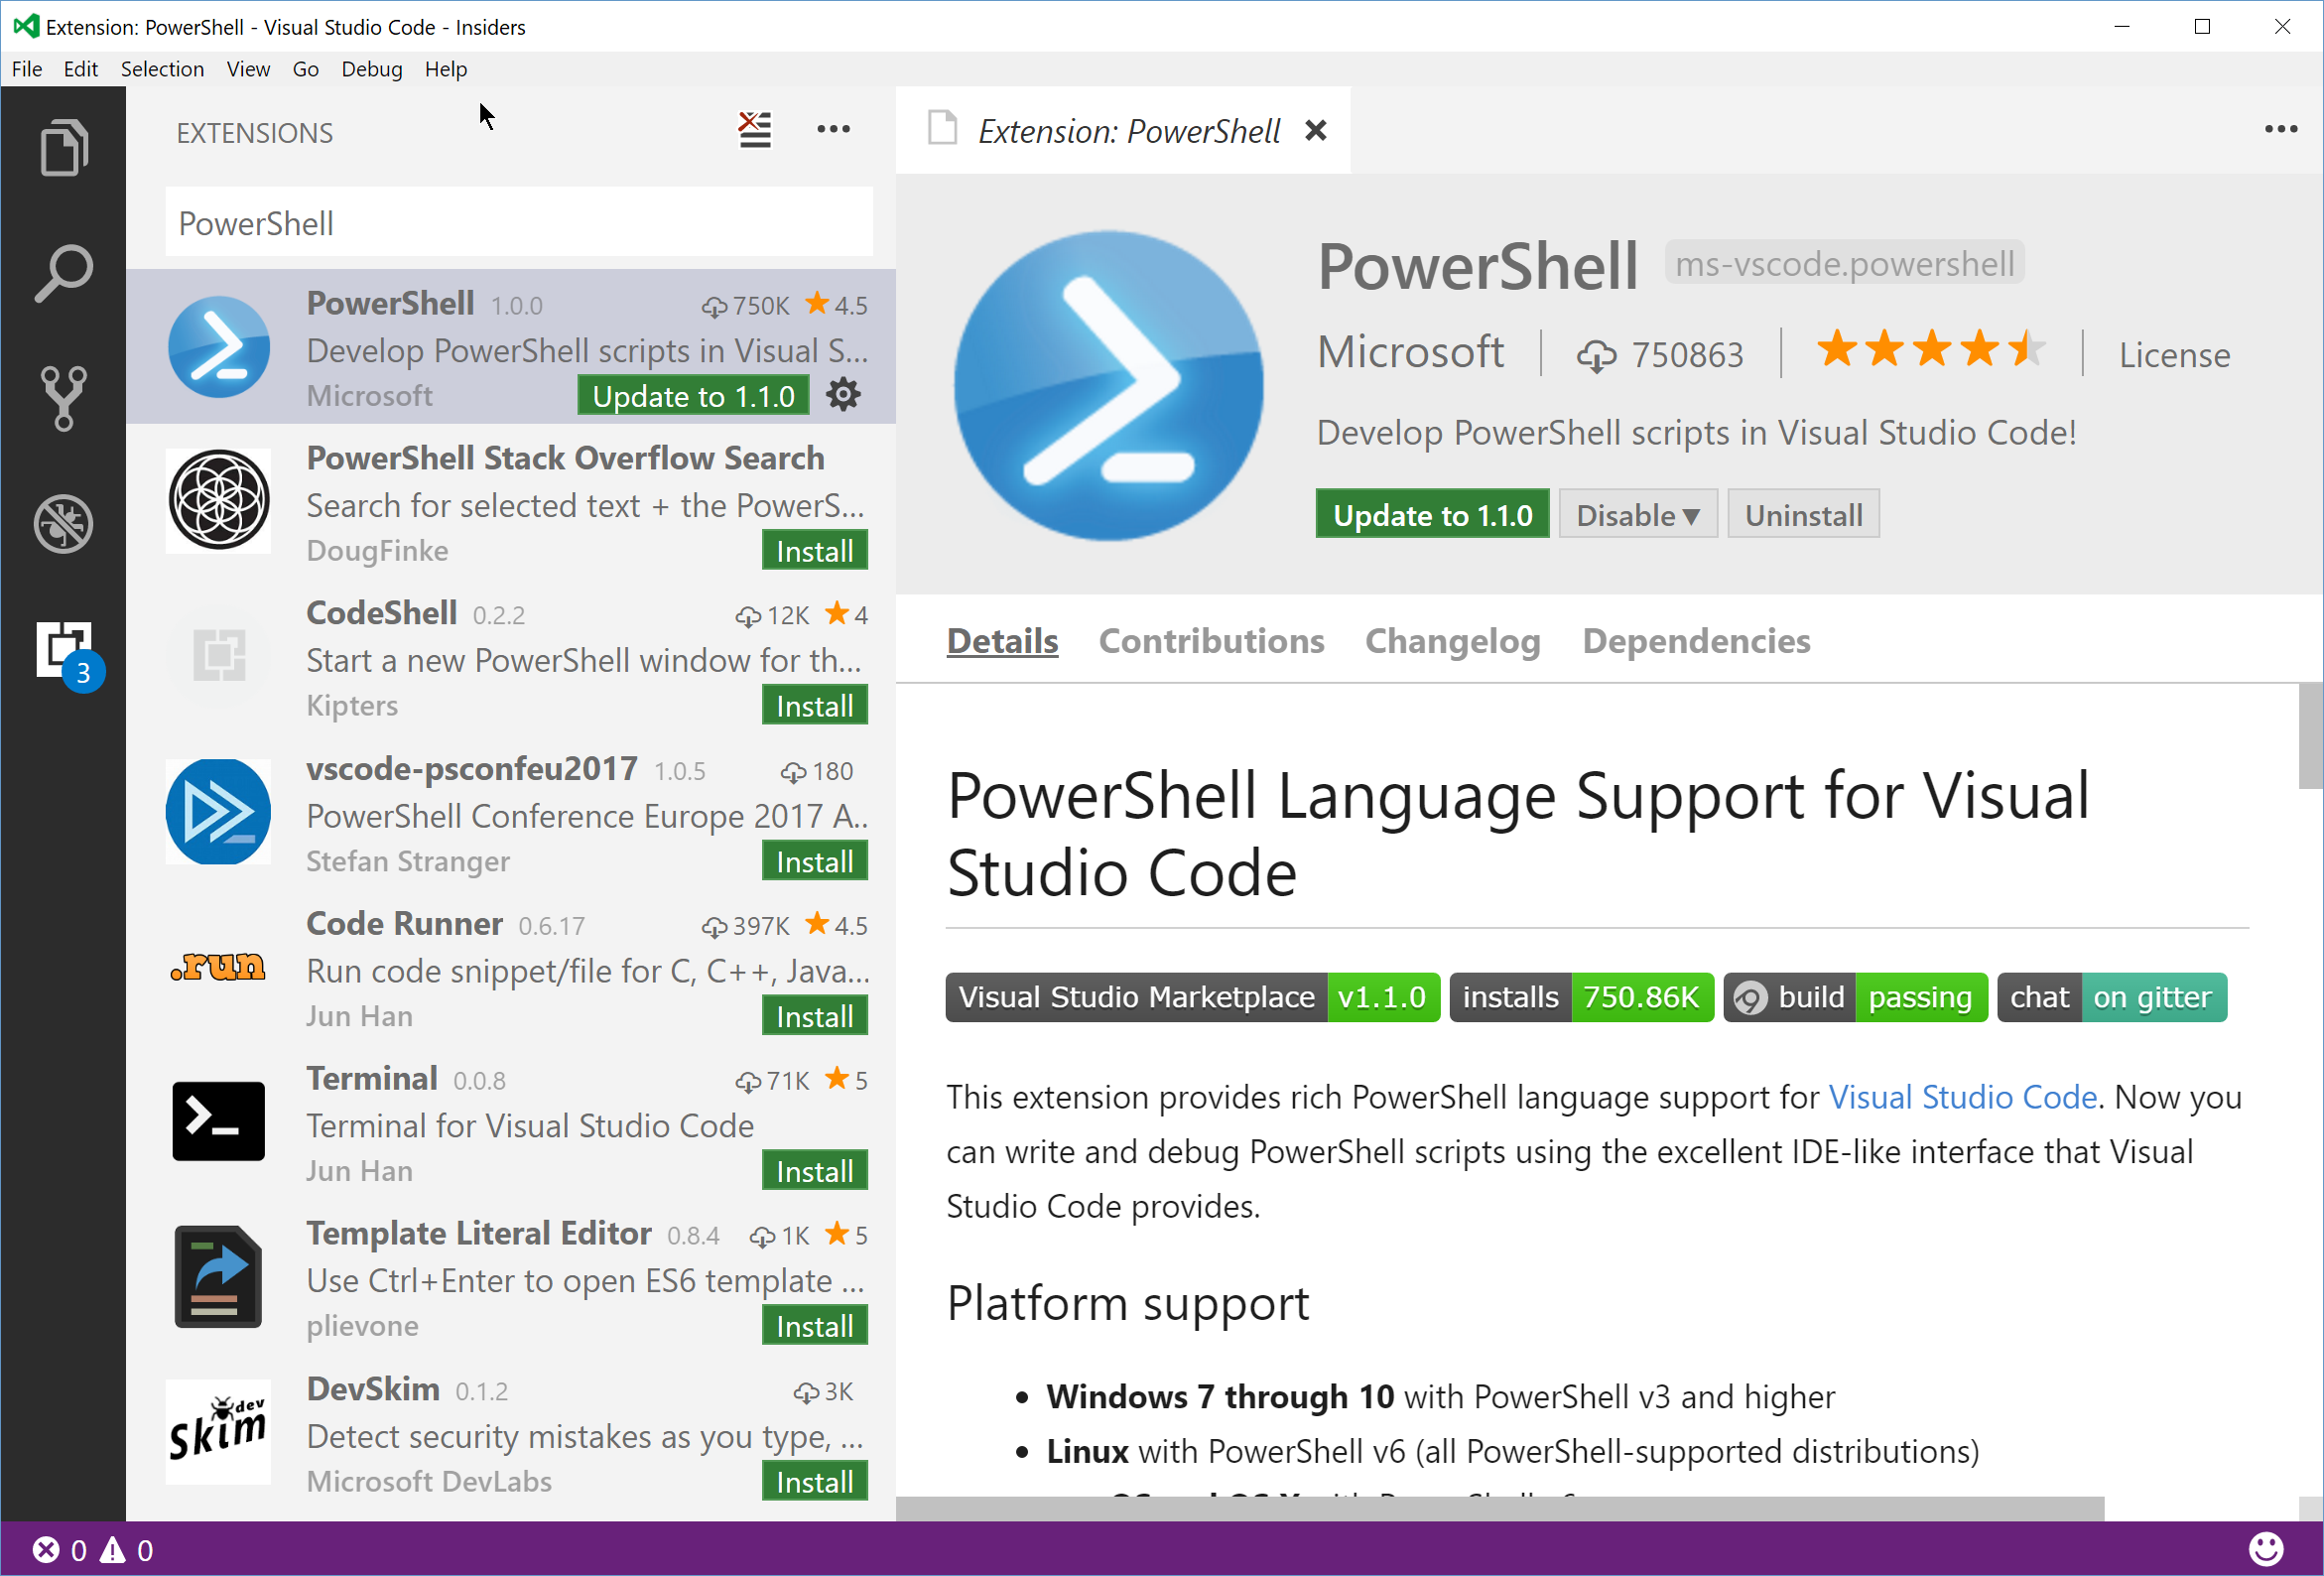 A new Powershell experience with Visual Studio Code